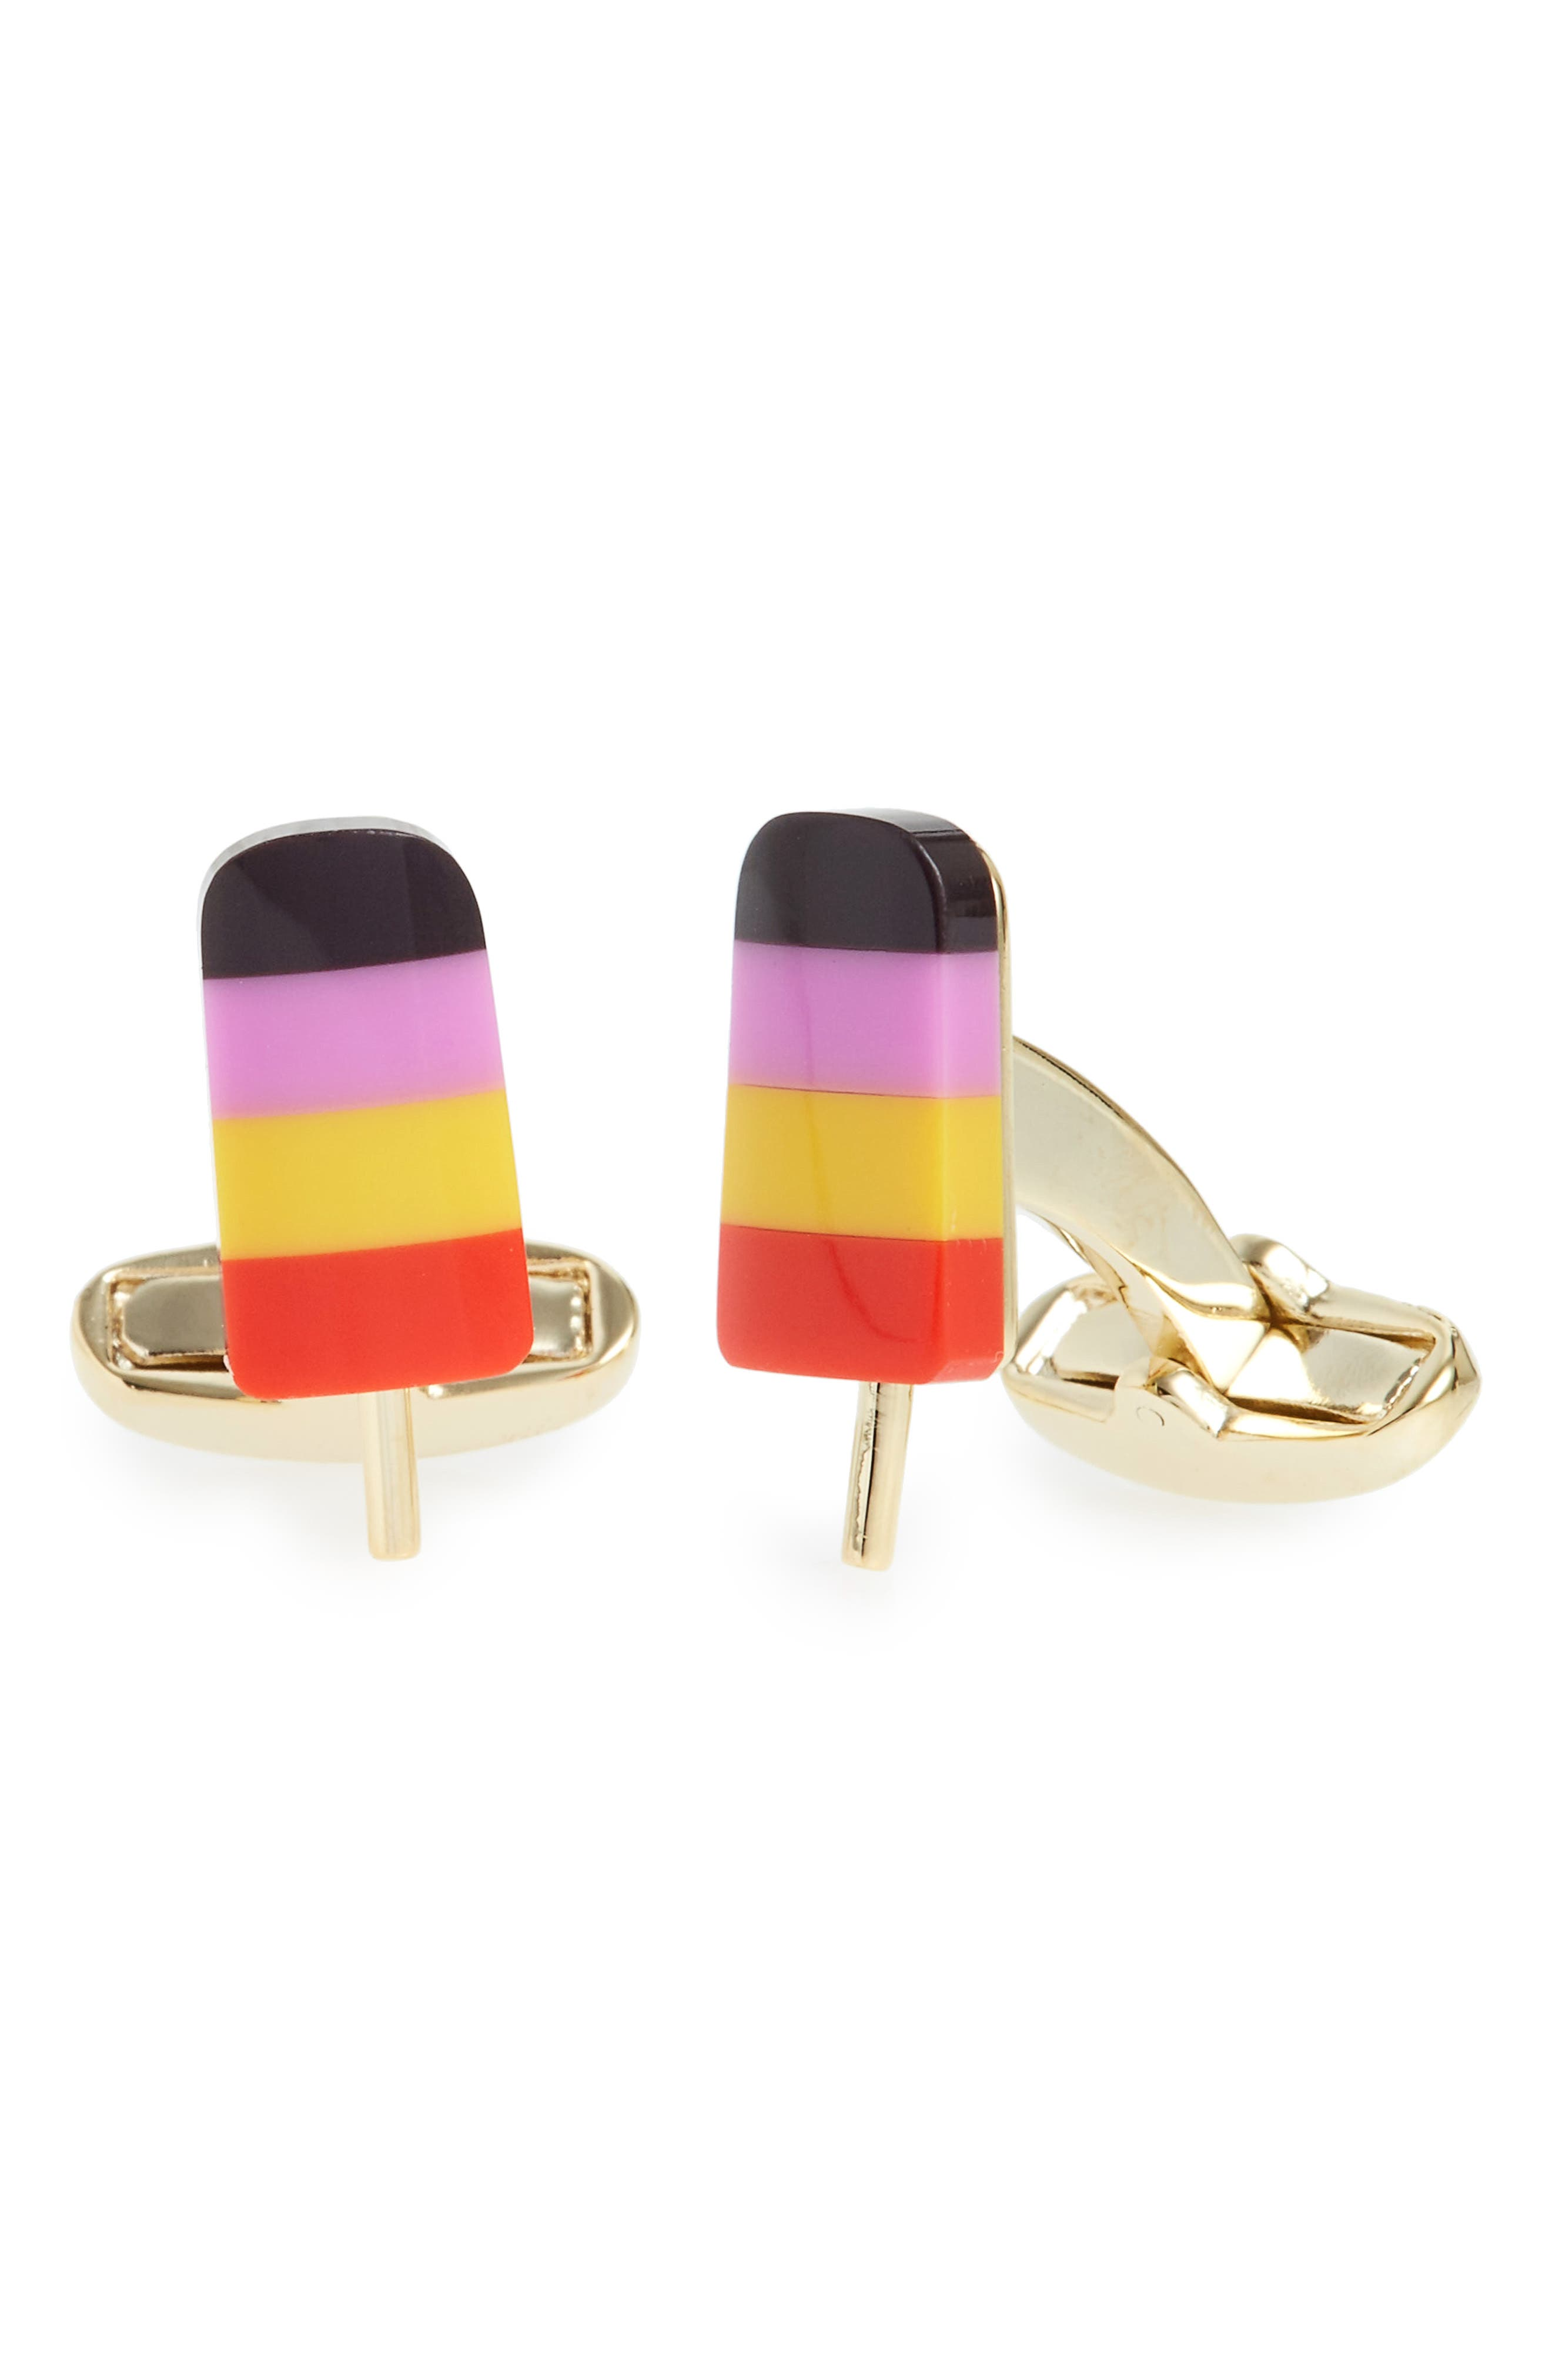 Paul Smith Popsicle Cuff Links